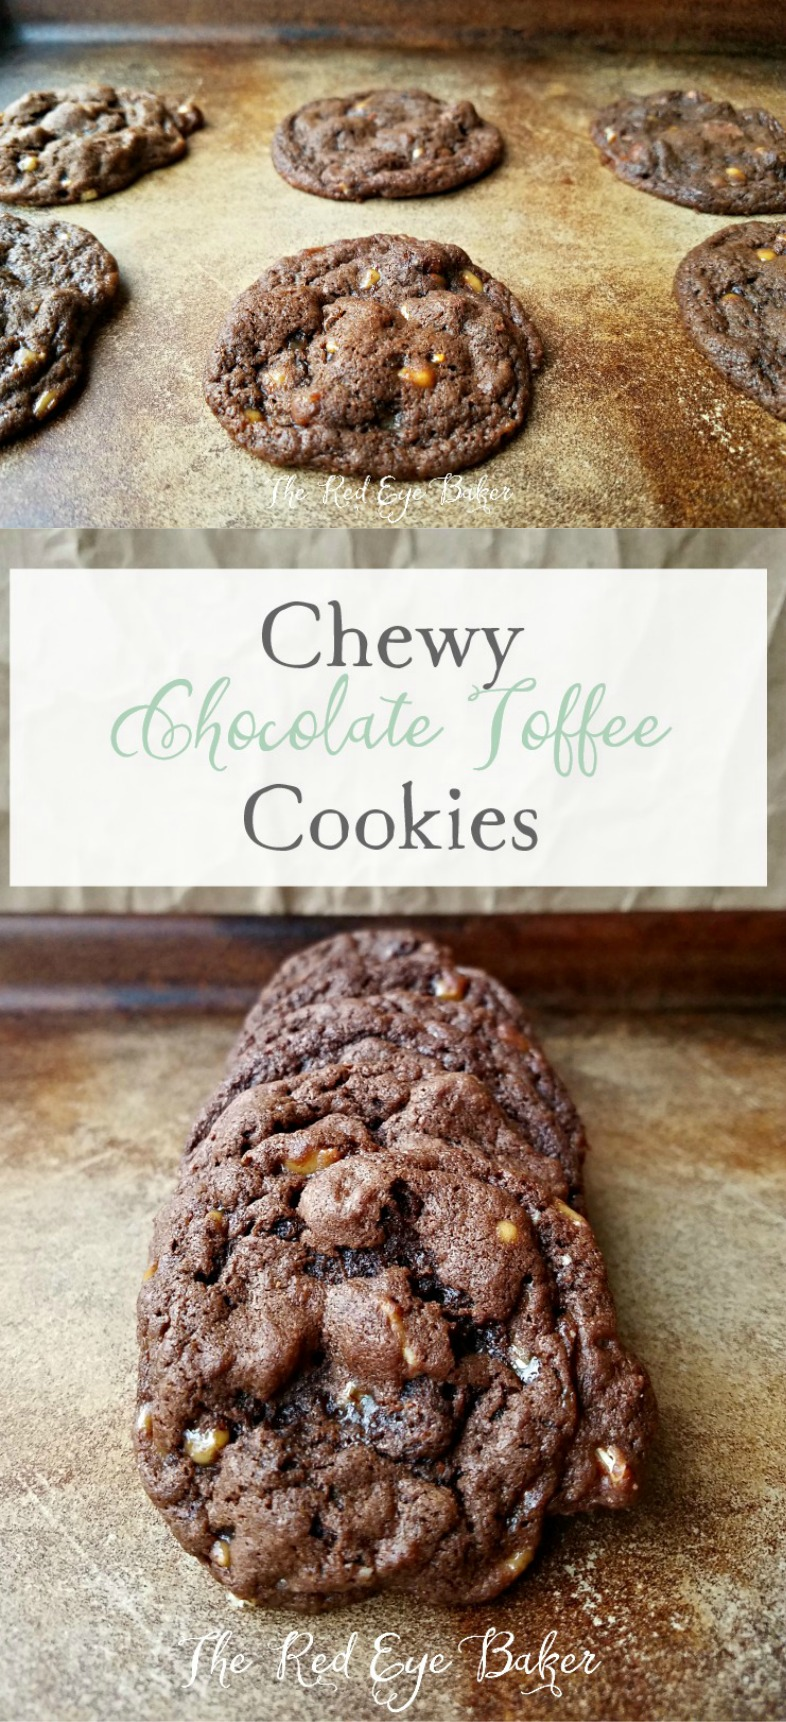 Chewy Chocolate Toffee Cookies | Delicious Chewy Chocolate Toffee Cookies filled with milk chocolate chips, Heath toffee bits, and chopped pecans. It's impossible to eat just one!